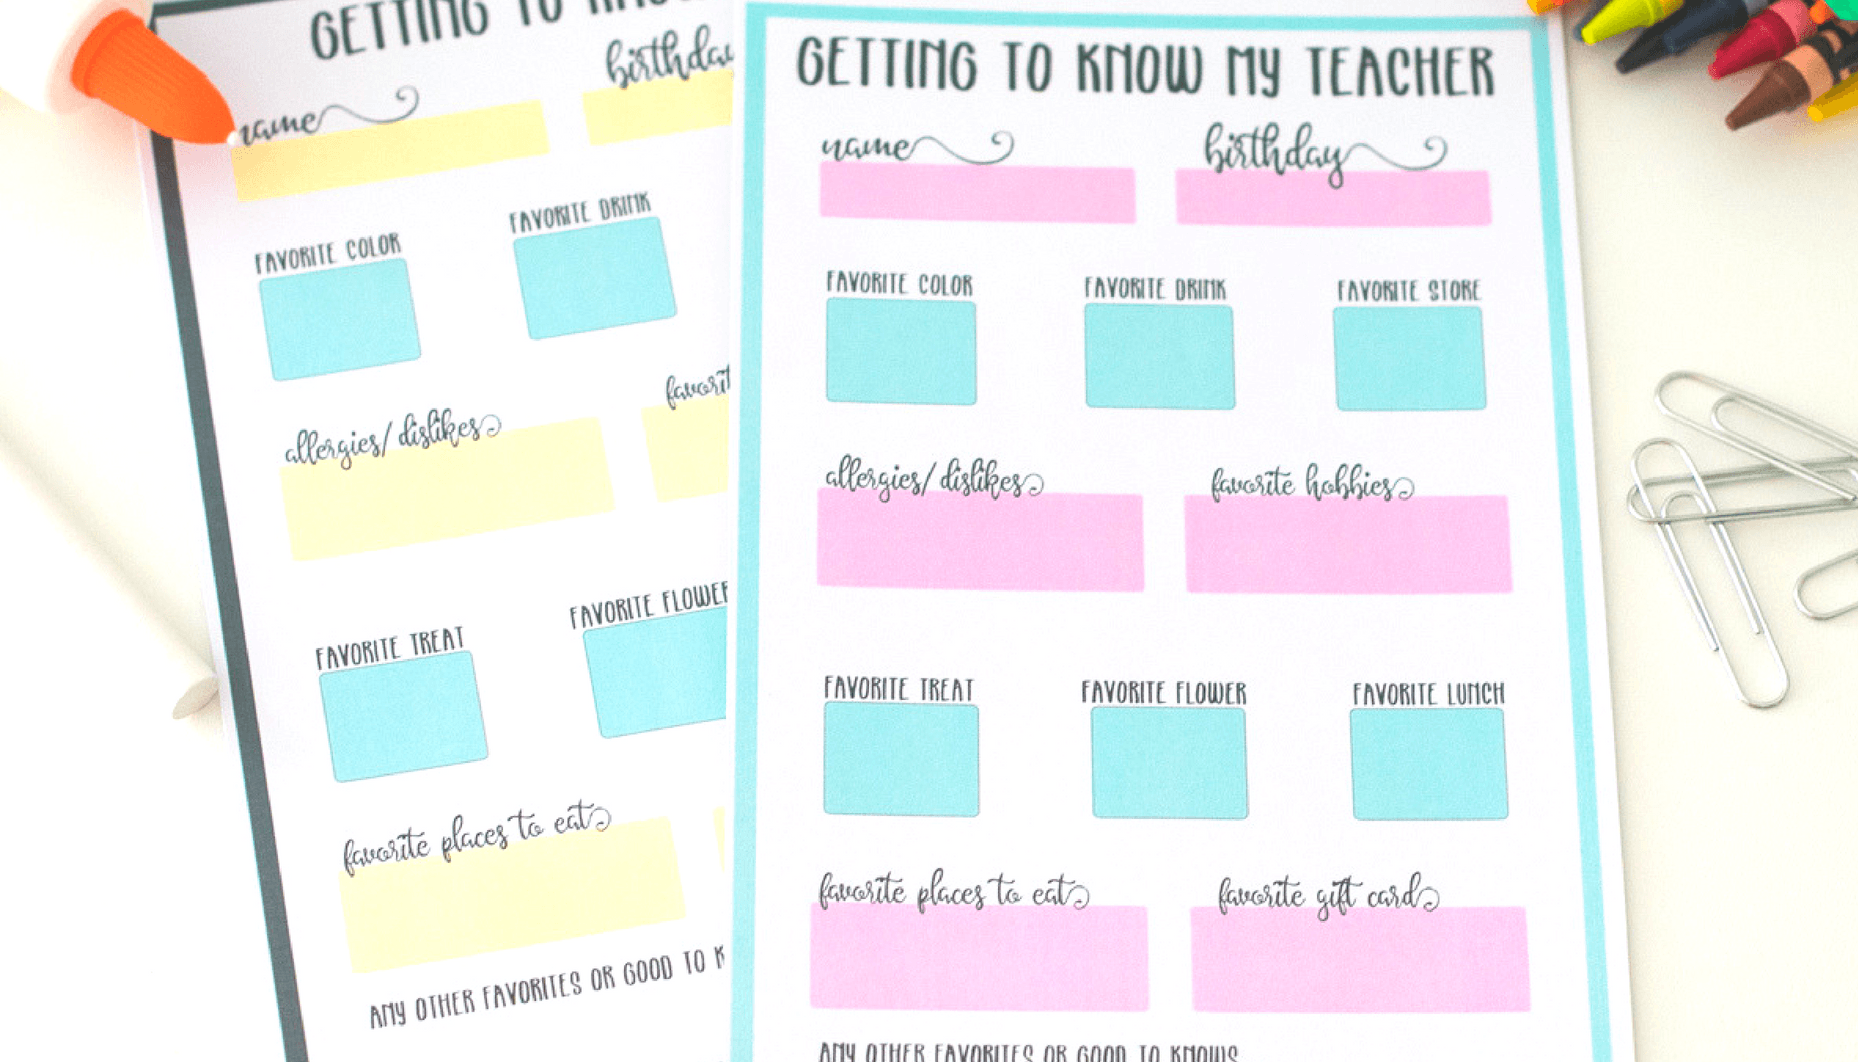 Get to know my teacher free printable questionnaire